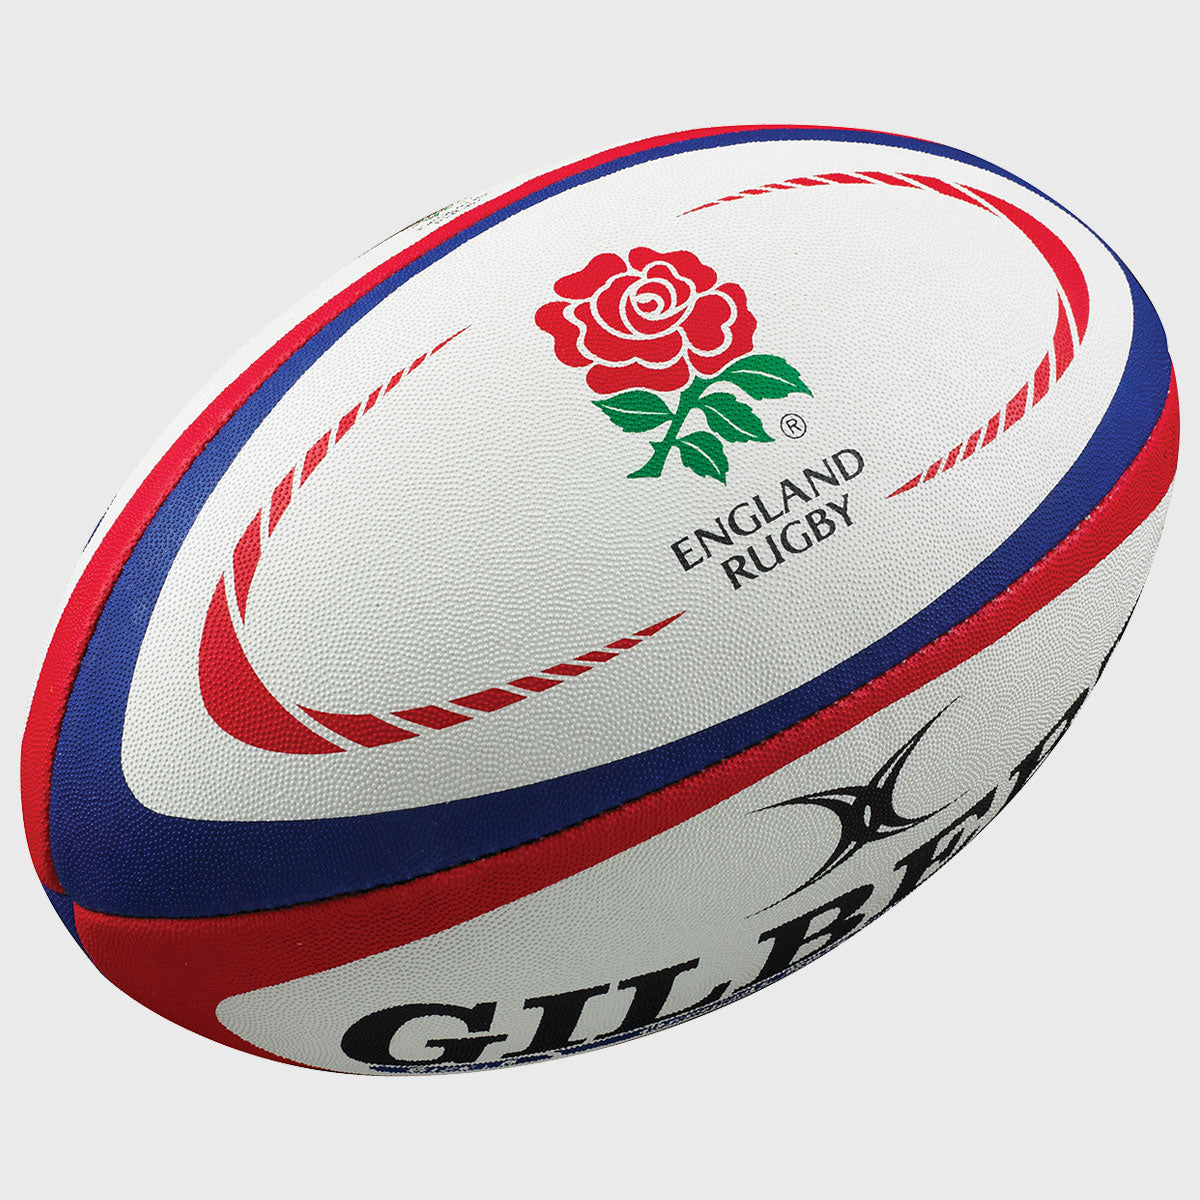 England Replica Rugby Ball